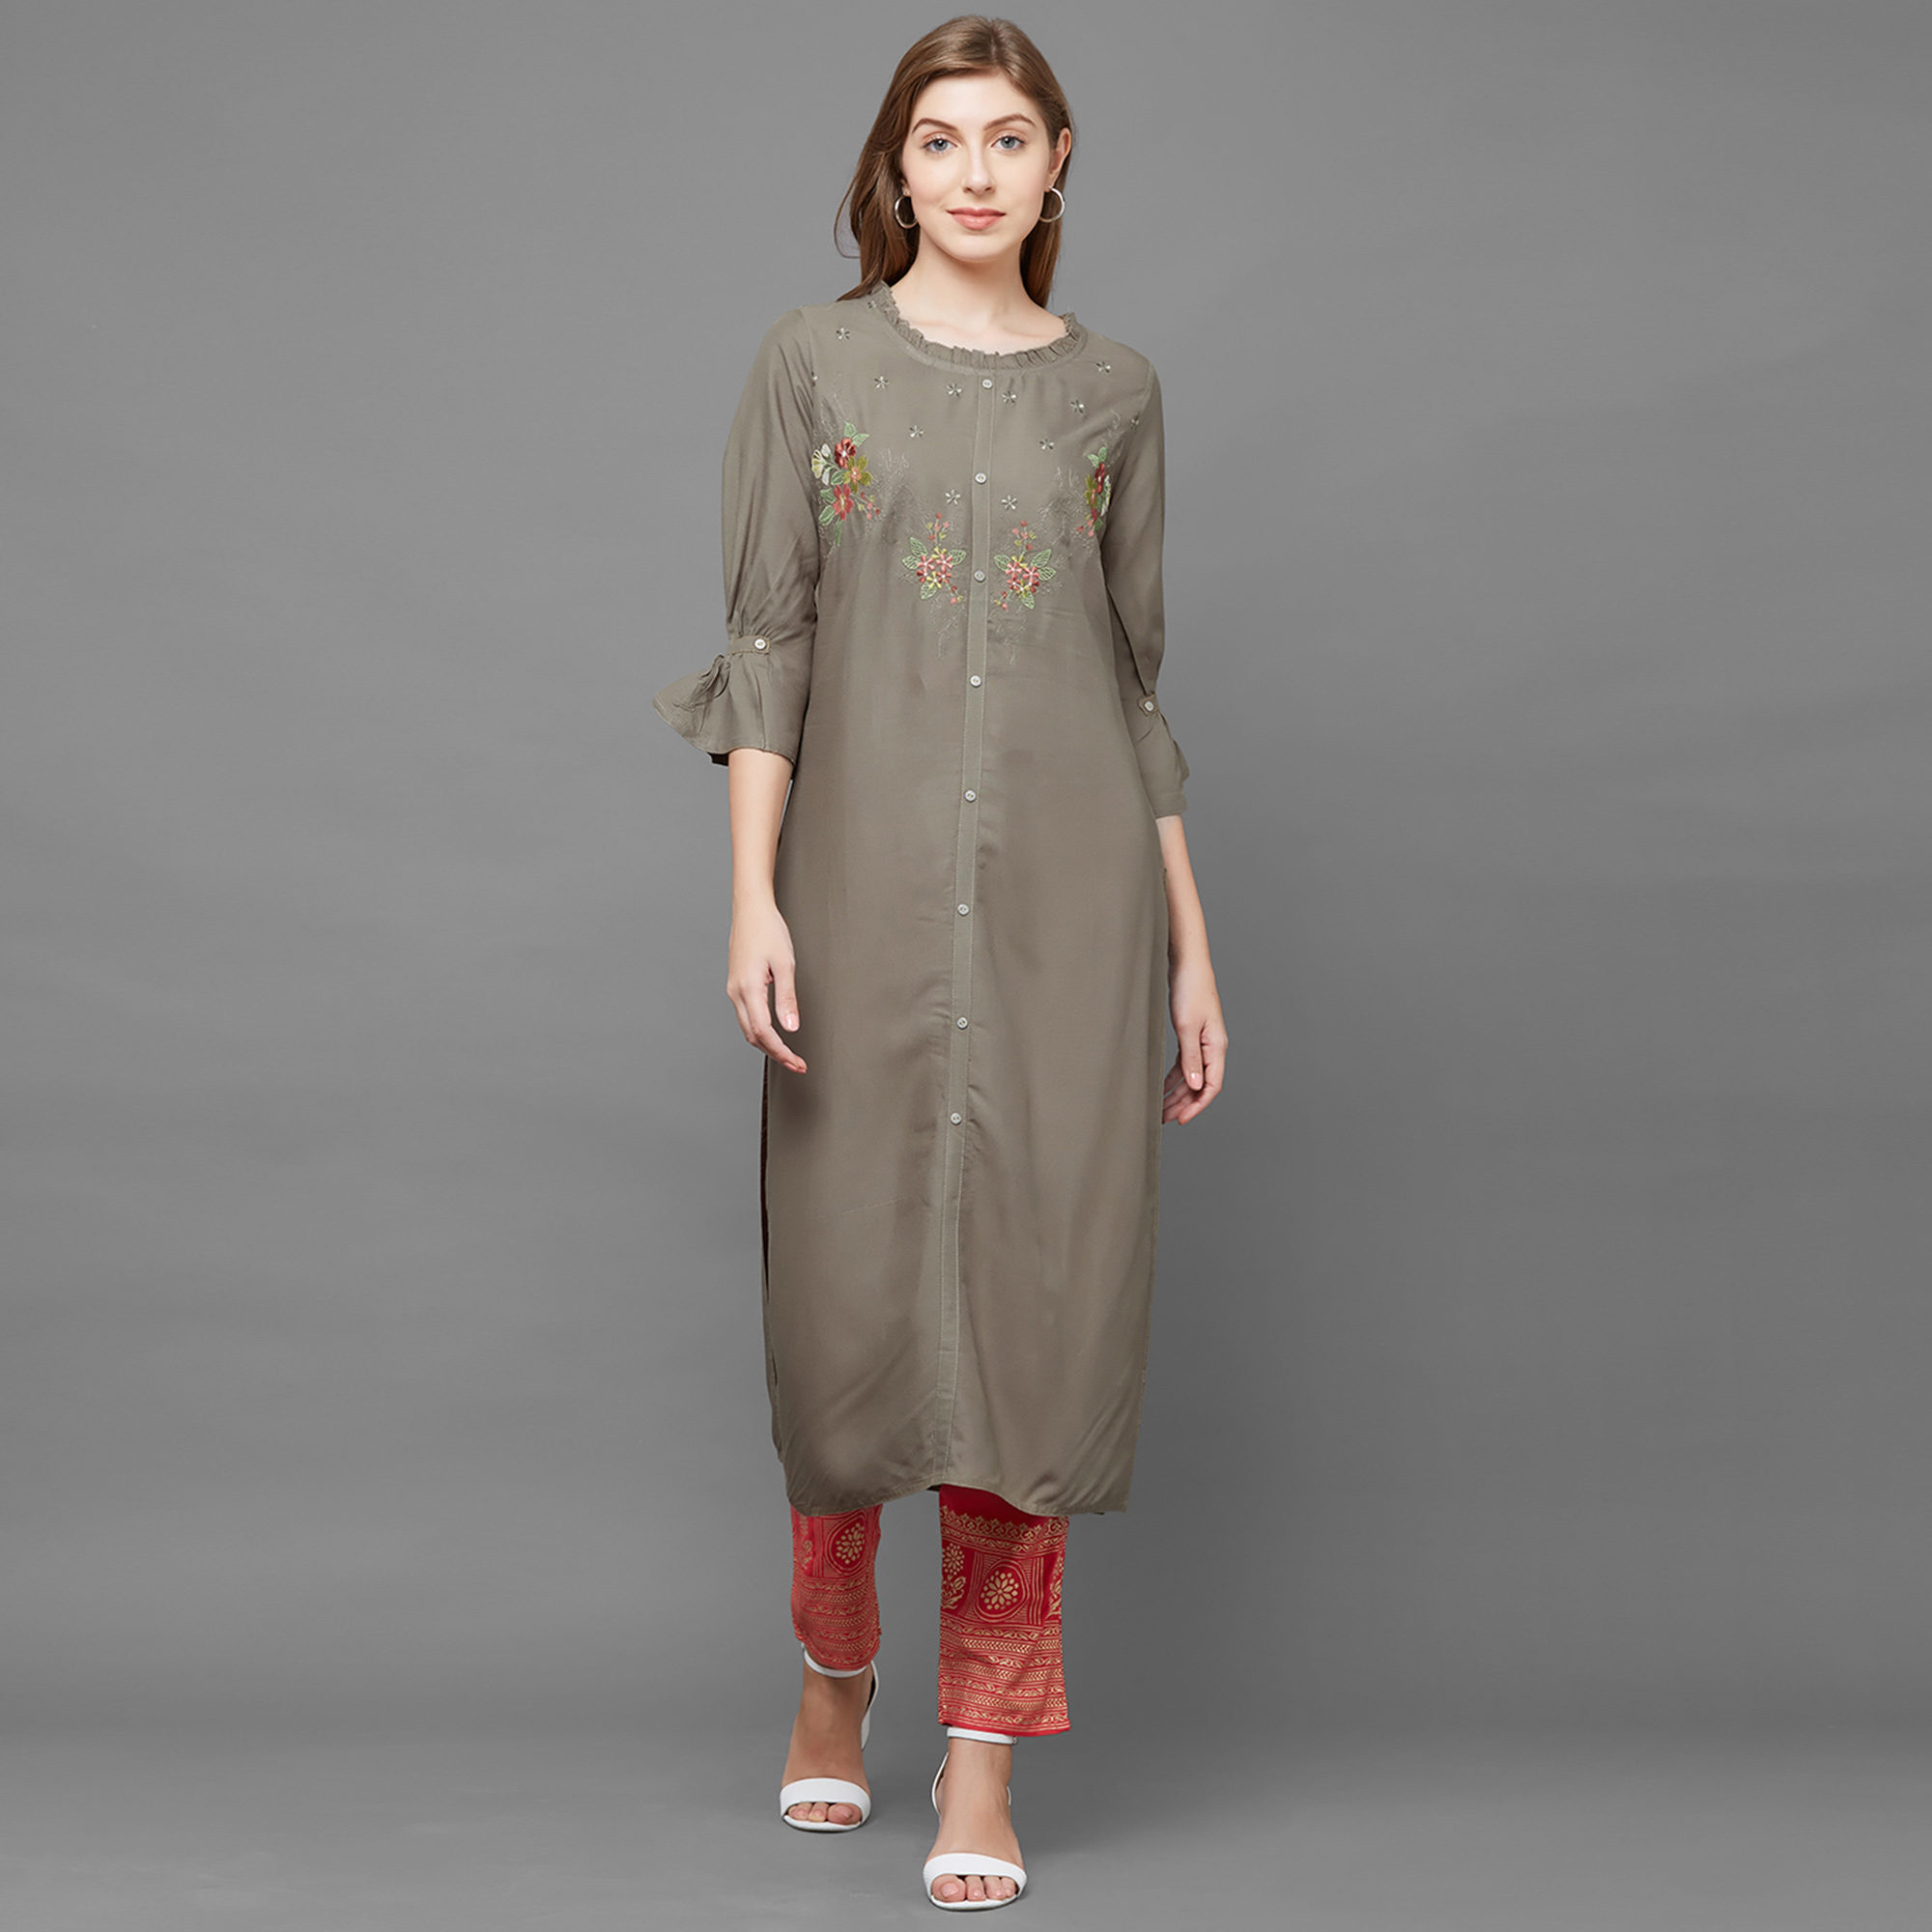 Ravishing Mehendi Green Colored Casual Embroidered Cotton Kurti